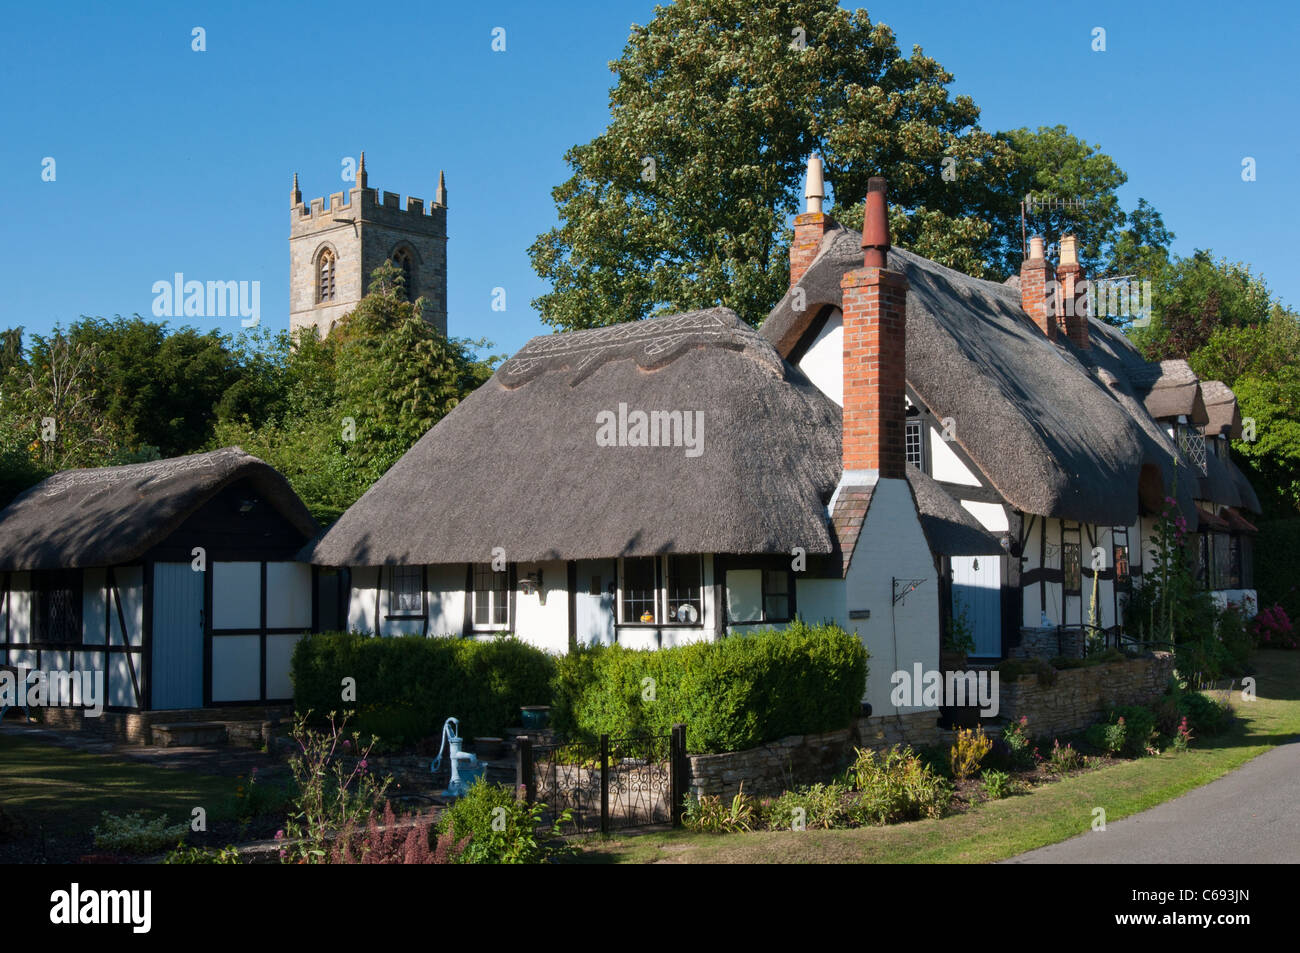 Tenpenny cottage and village church in Welford on Avon Warwickshire. UK - Stock Image